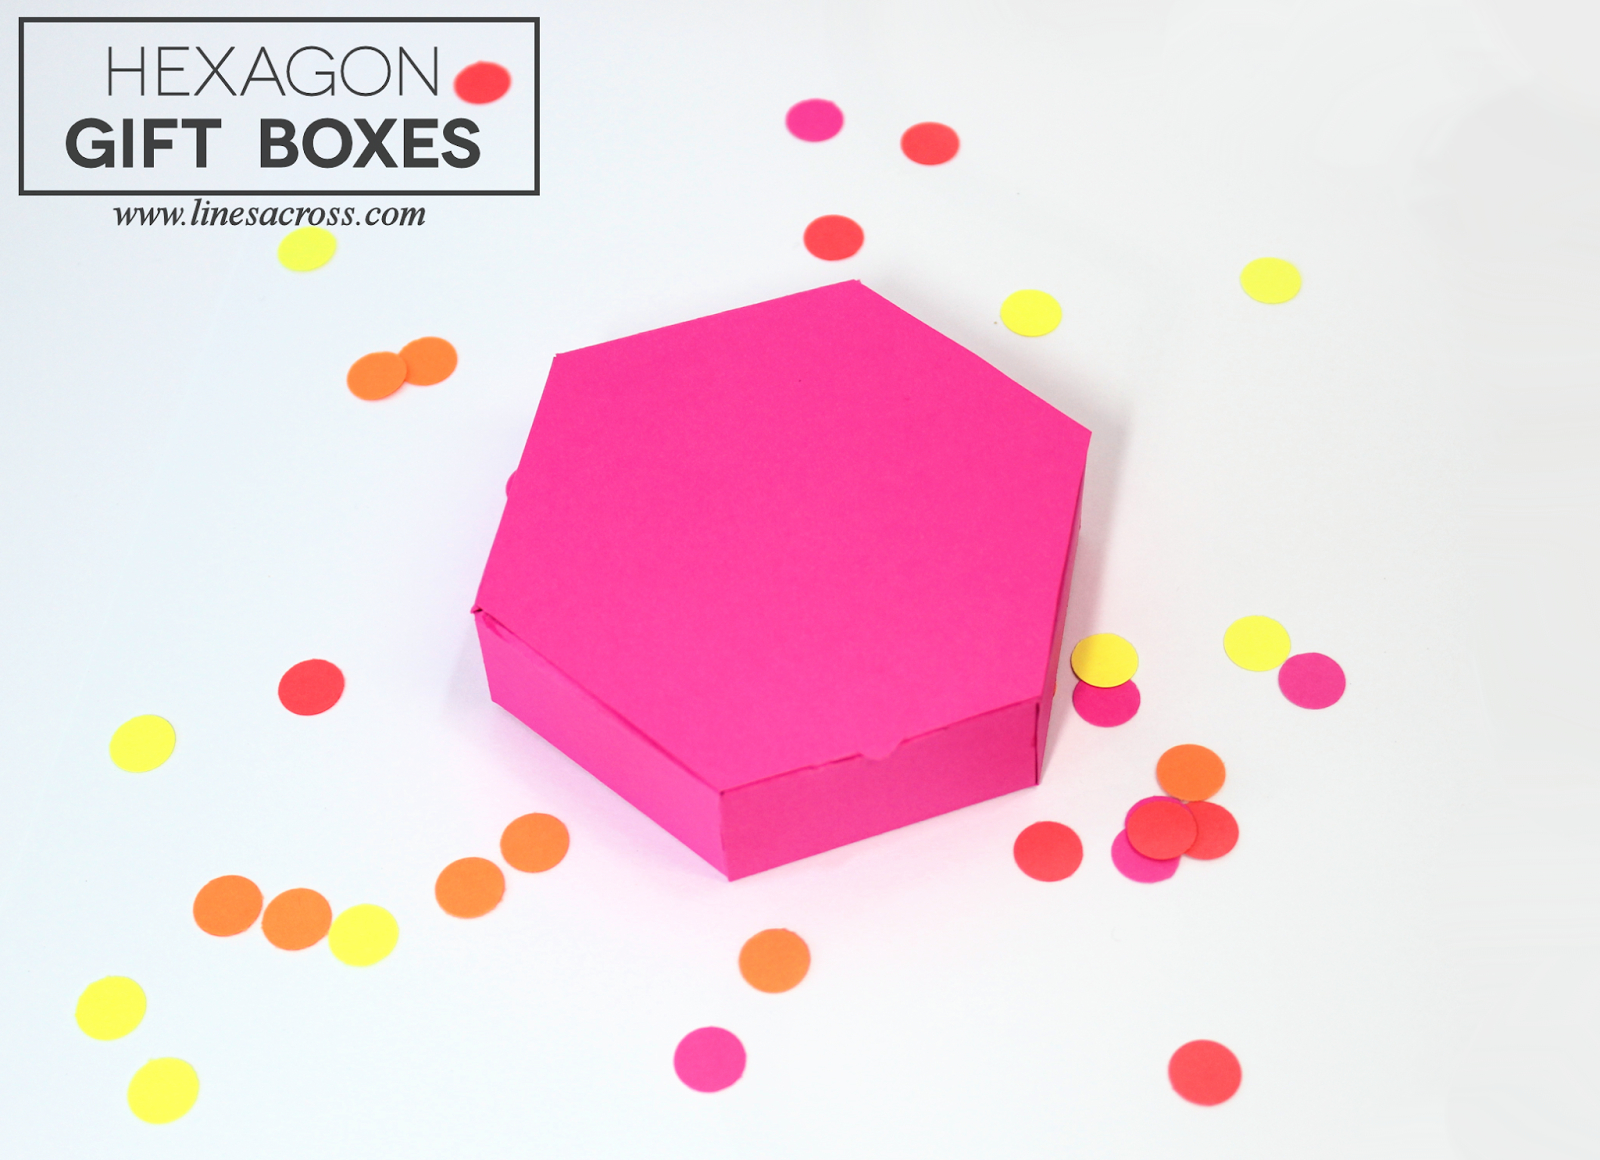 15 Paper Gift Box Templates - Lines Across - Free Printable Gift Boxes